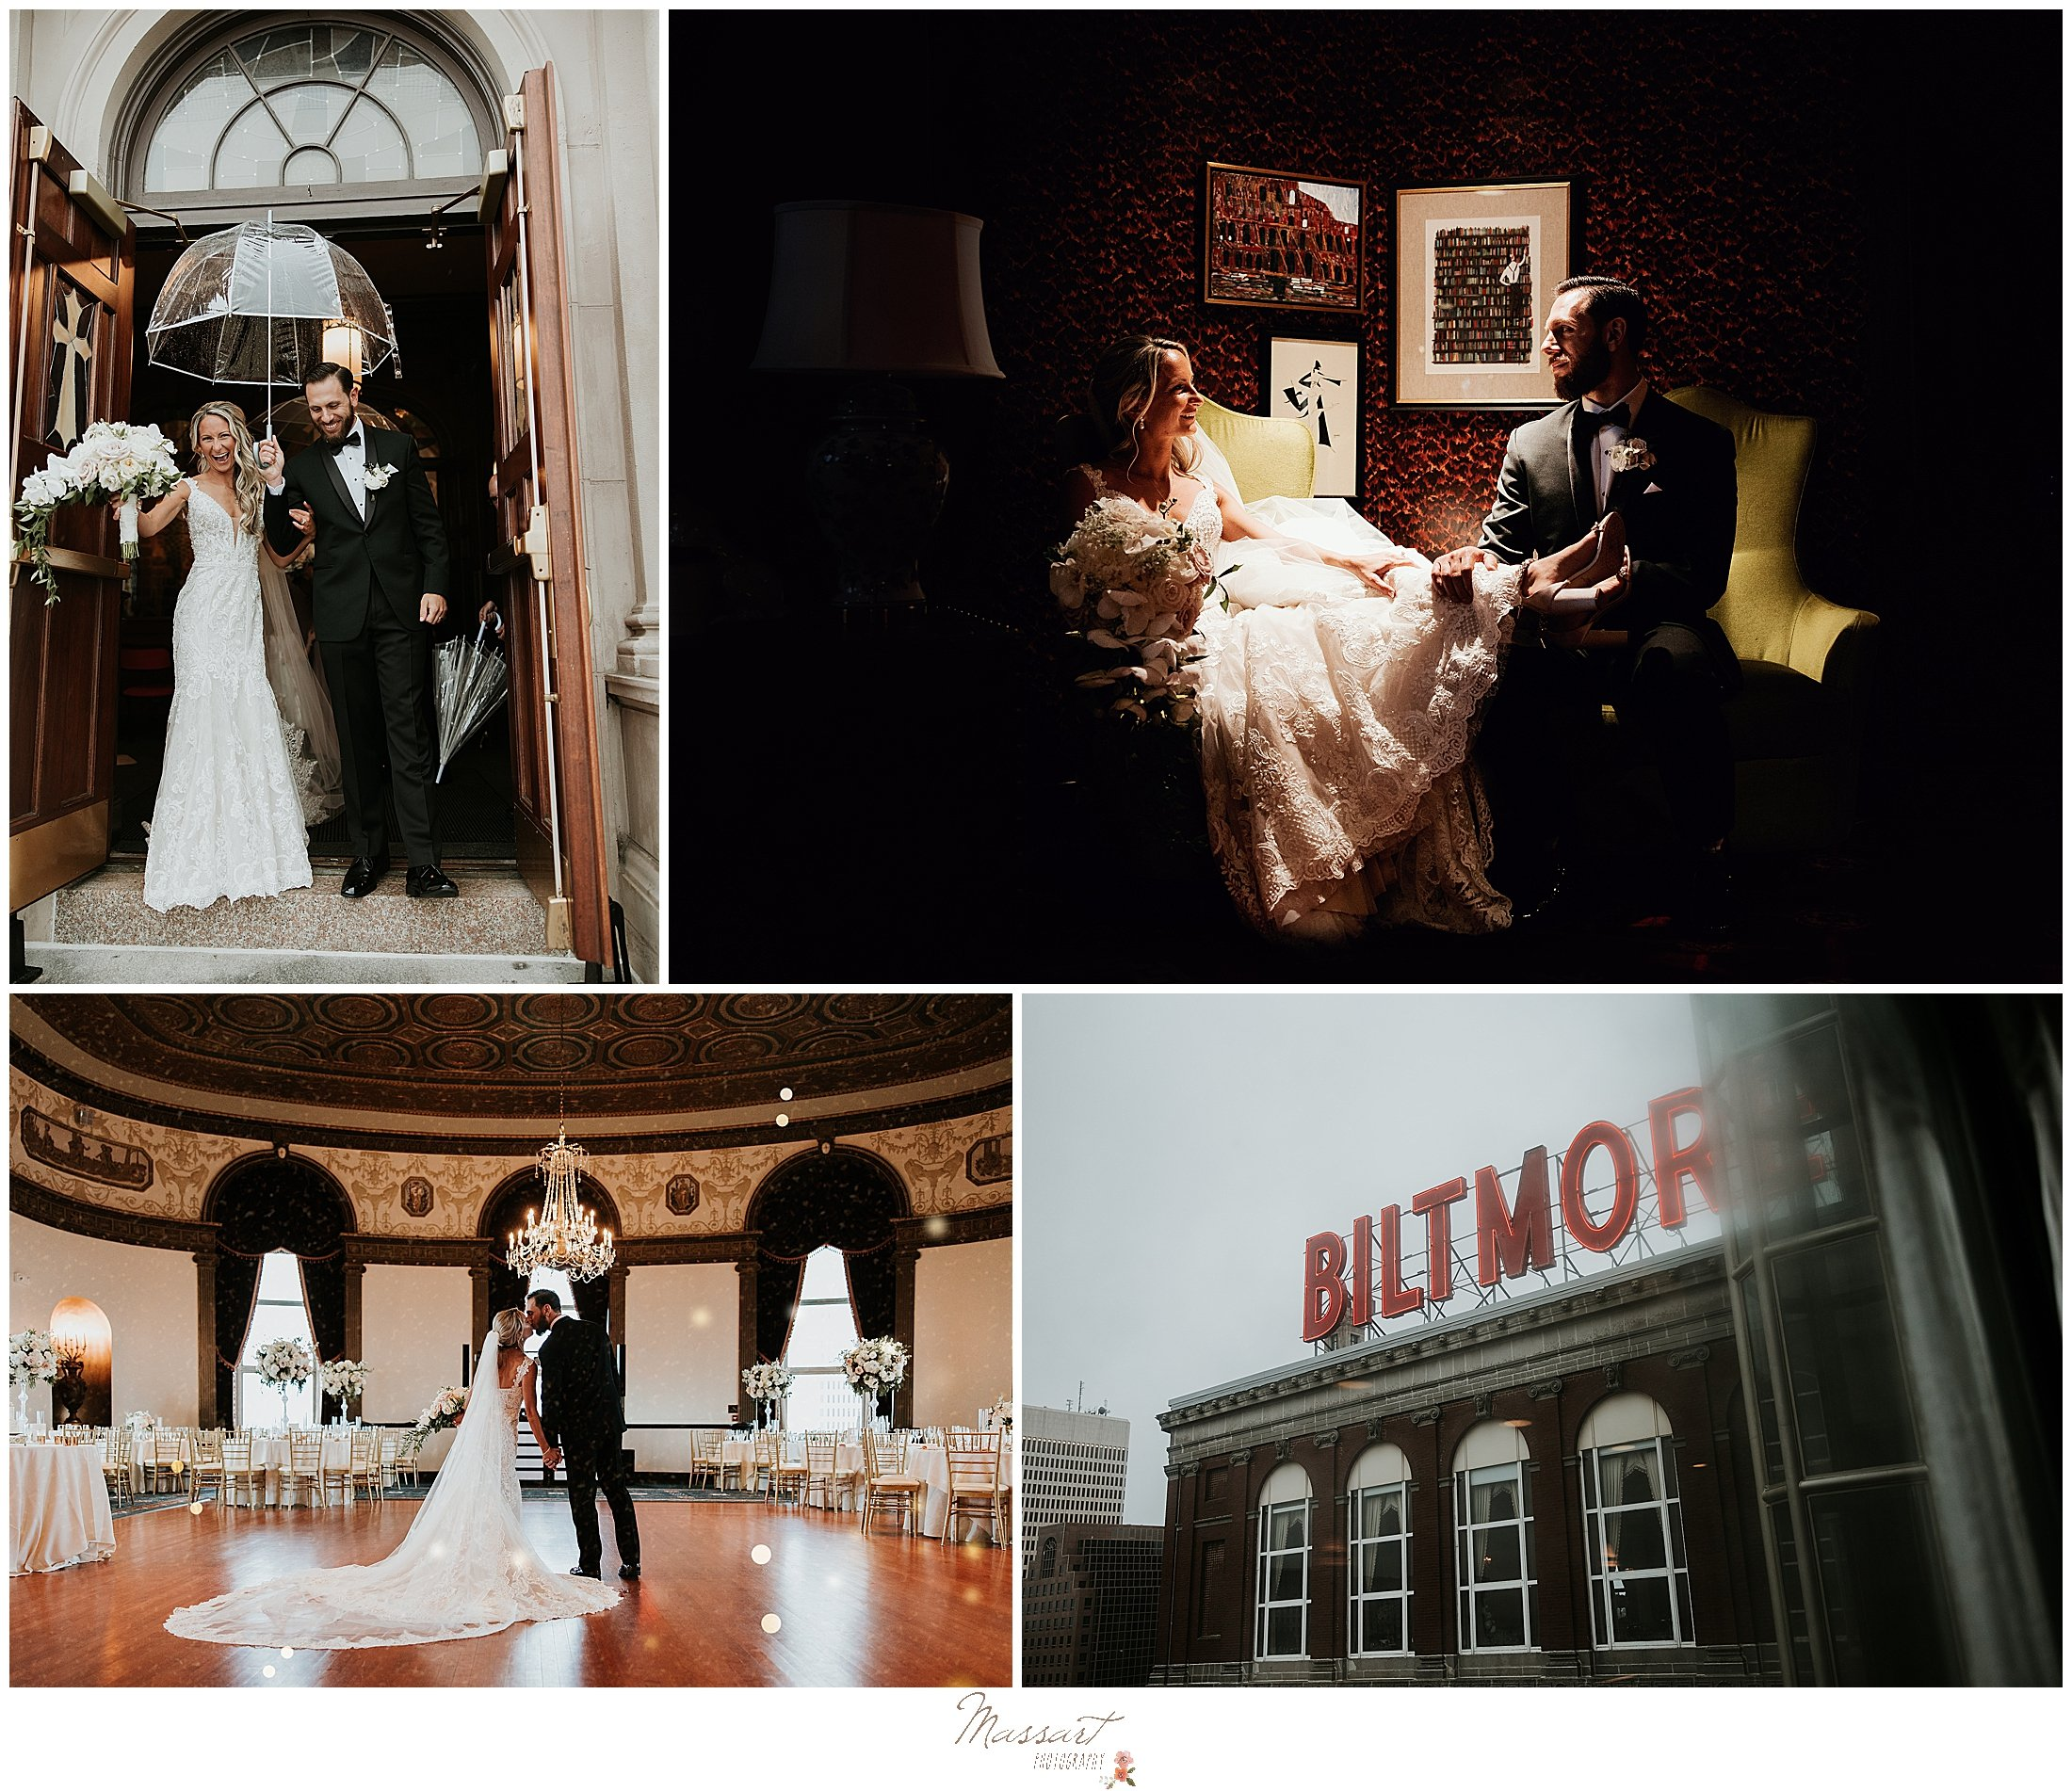 newlywed portraits in the Biltmore Hotel